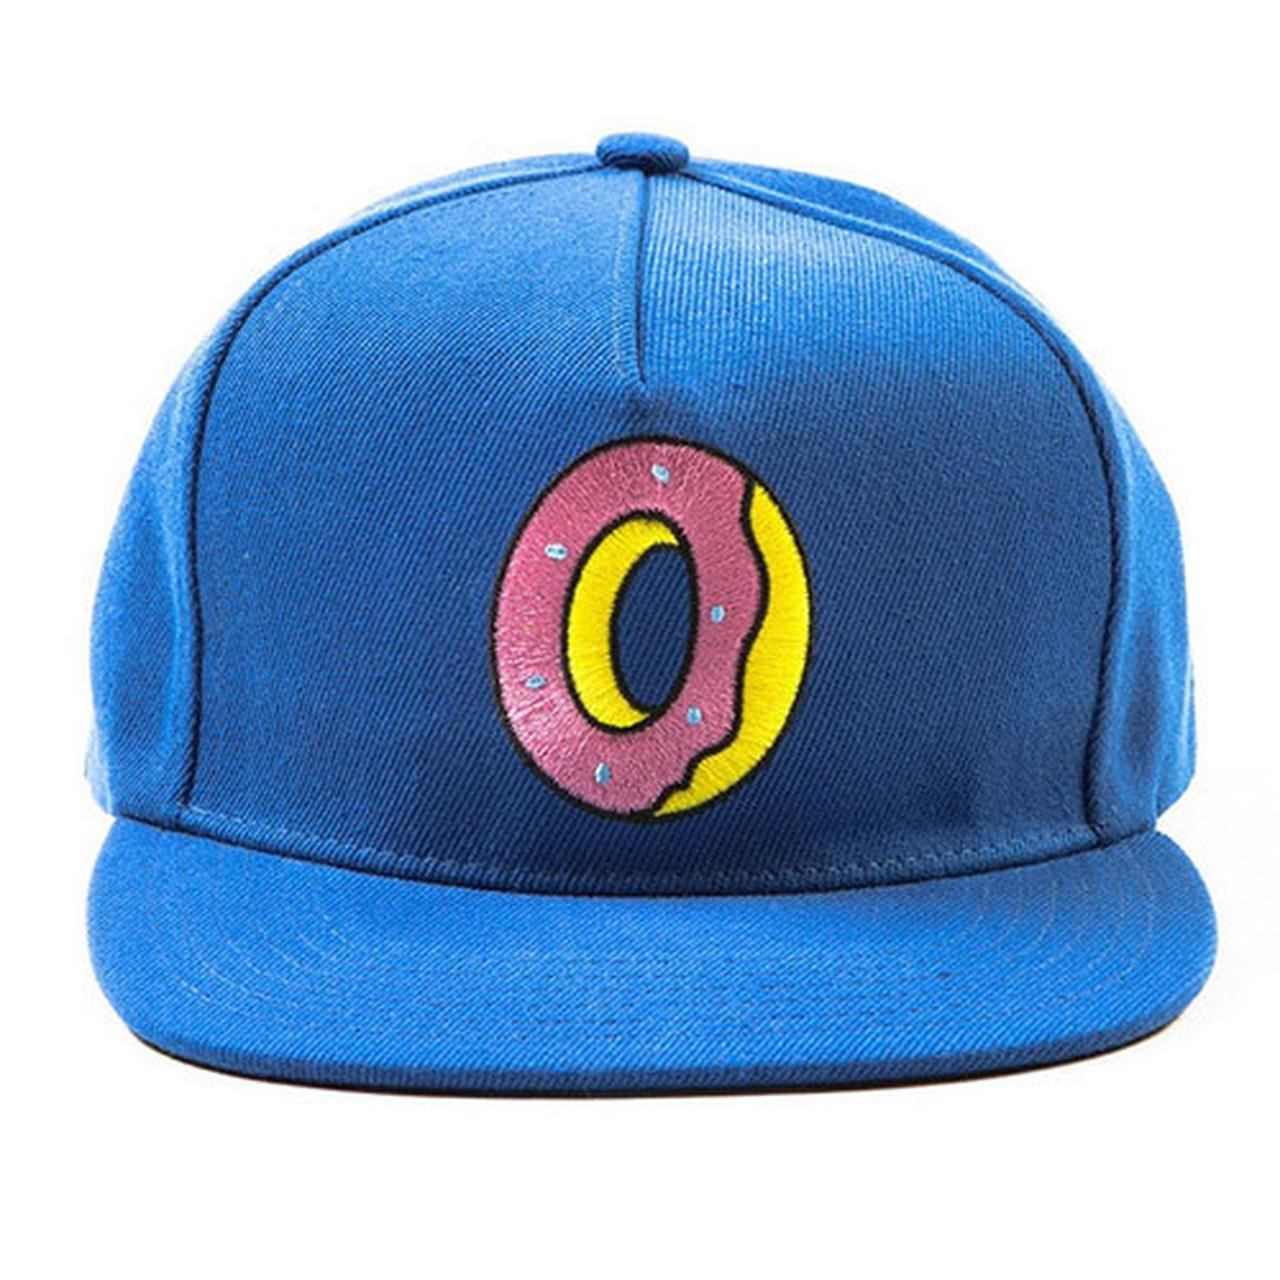 Tyler The Creator. SINGLE DONUT SNAPBACK ROYAL BLUE 48c4bfd1d93c